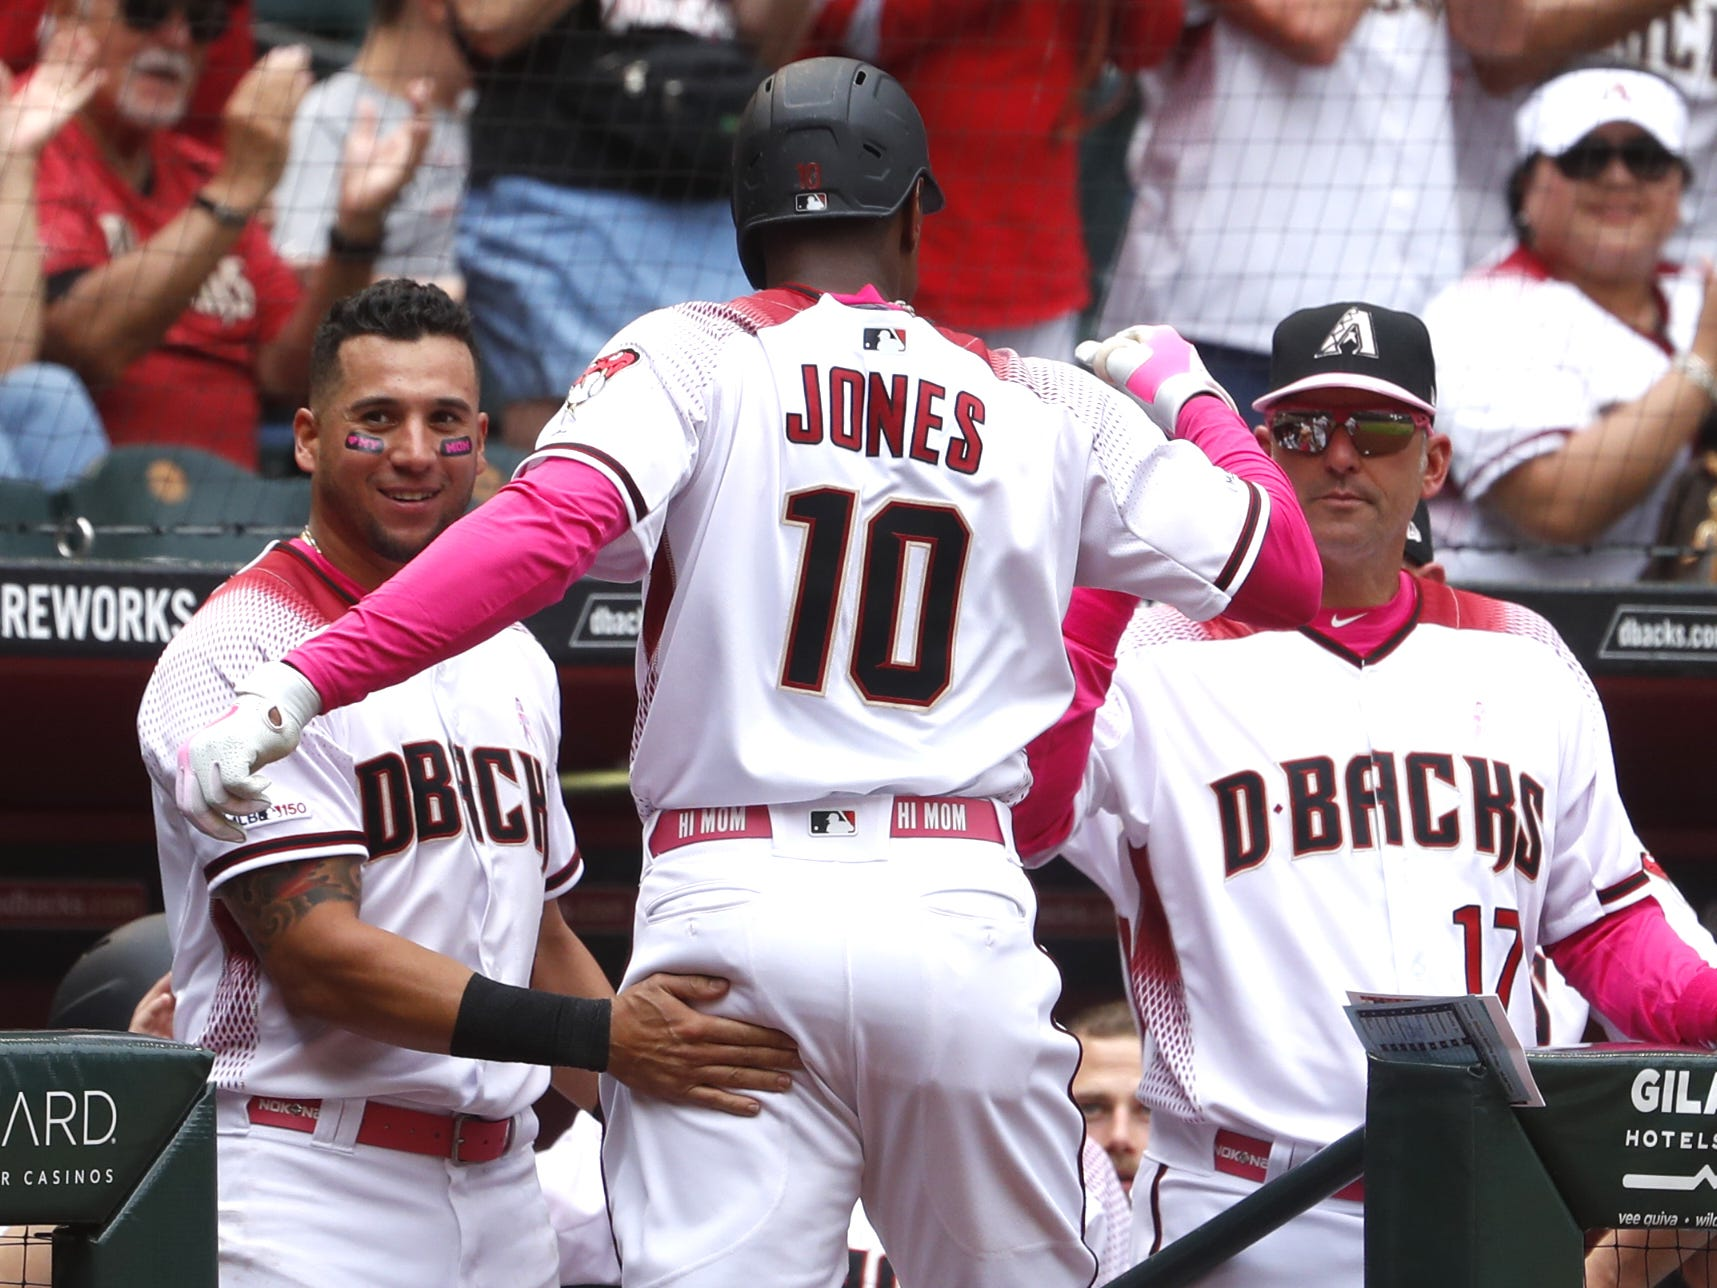 Diamondbacks' Adam Jones (10) celebrates his two-run homer with David Peralta (6) during the fourth inning against the Braves at Chase Field in Phoenix, Ariz. on May 12, 2019.